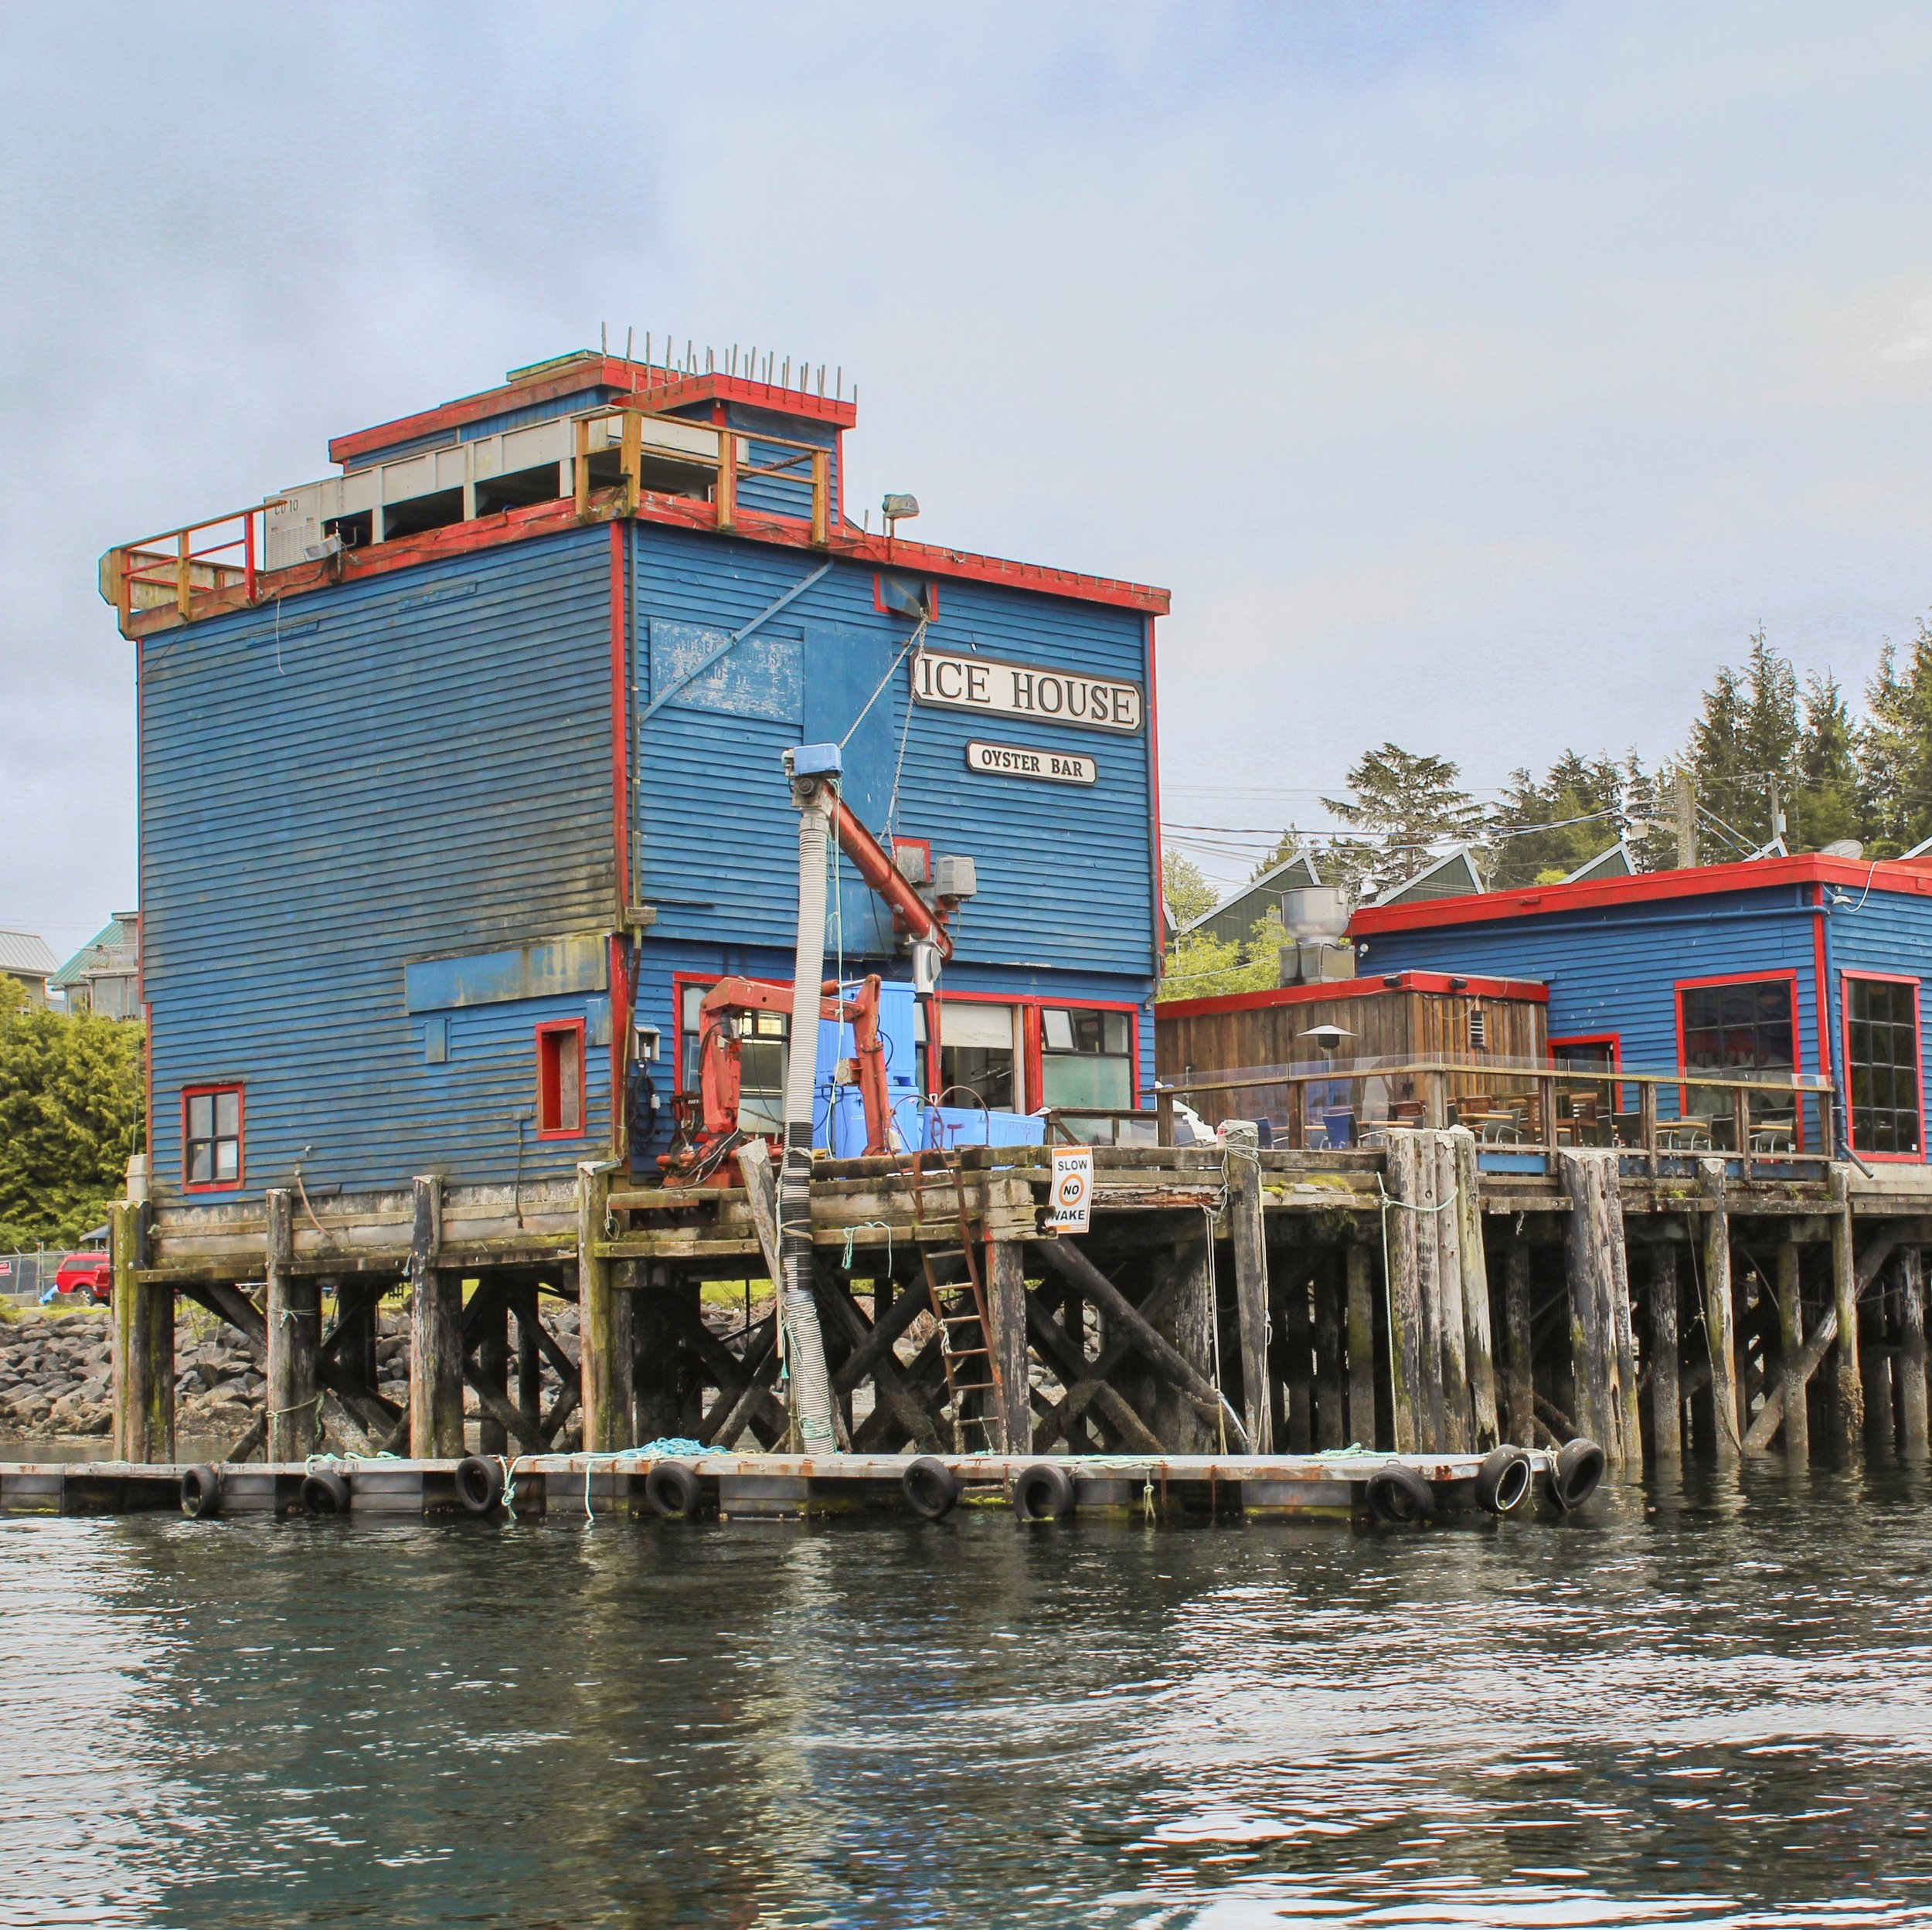 Ice House Oyster Bar in Tofino town